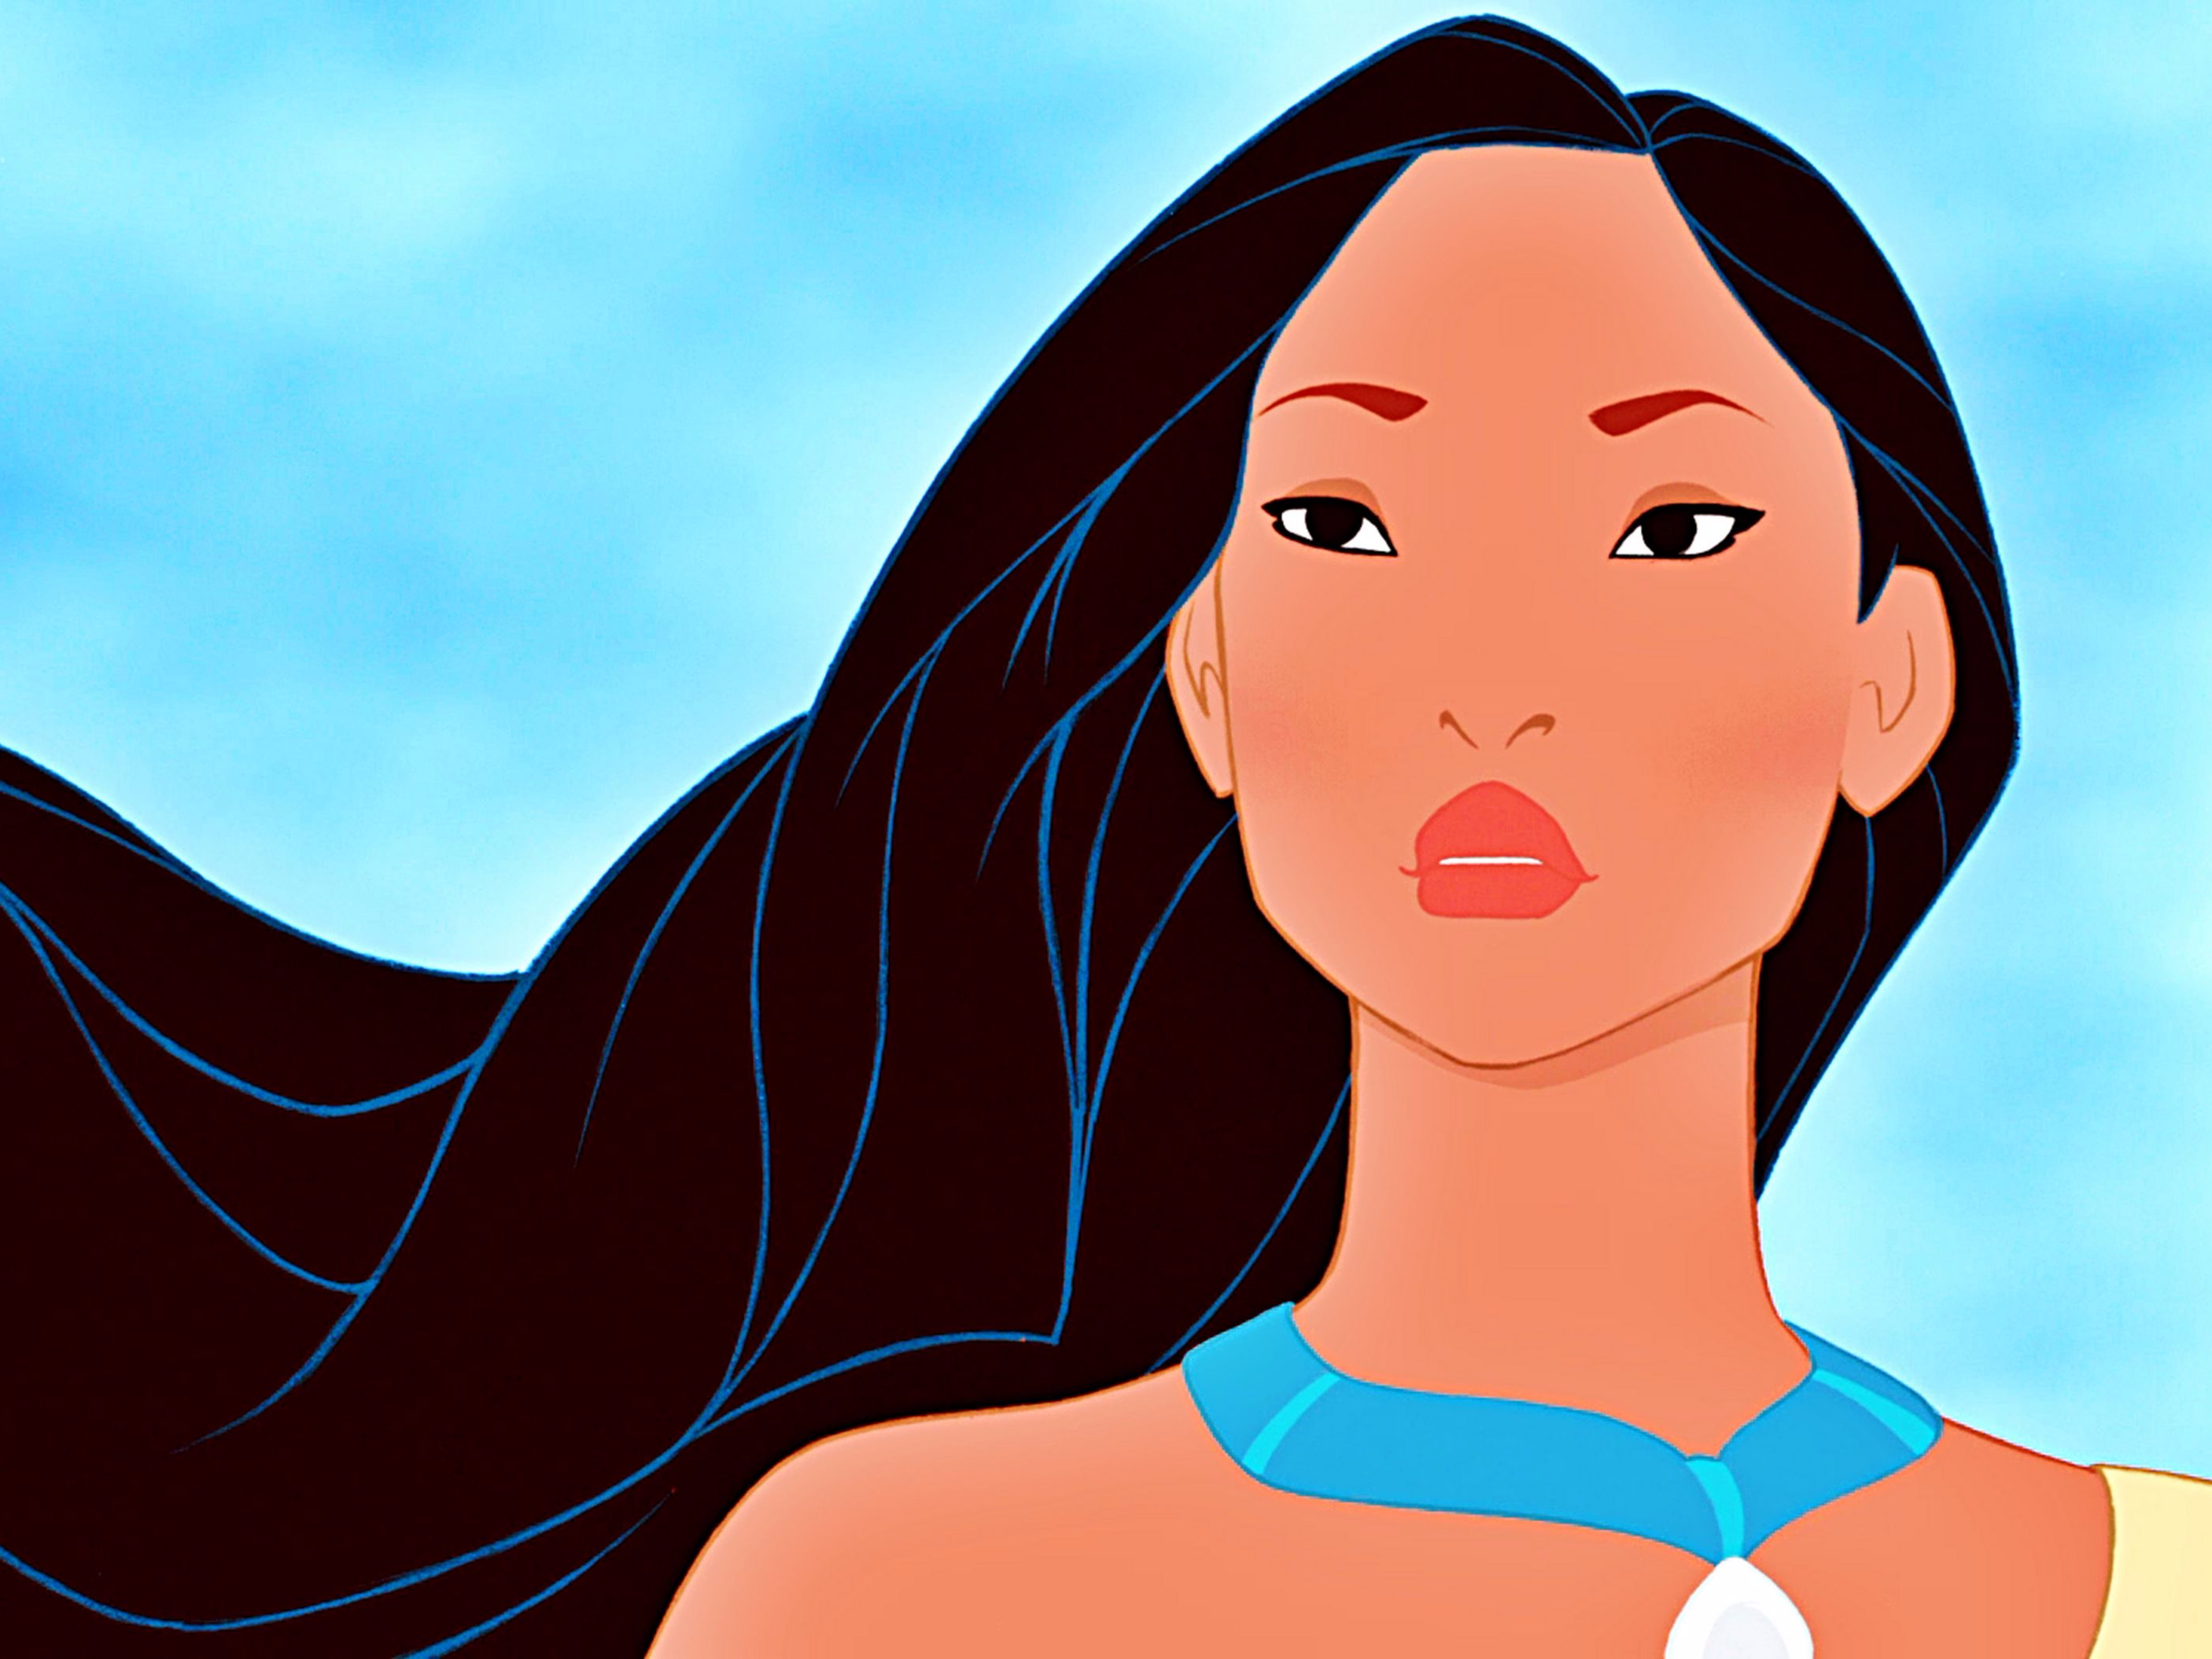 Rule 34 disney princesses pocahontas softcore galleries